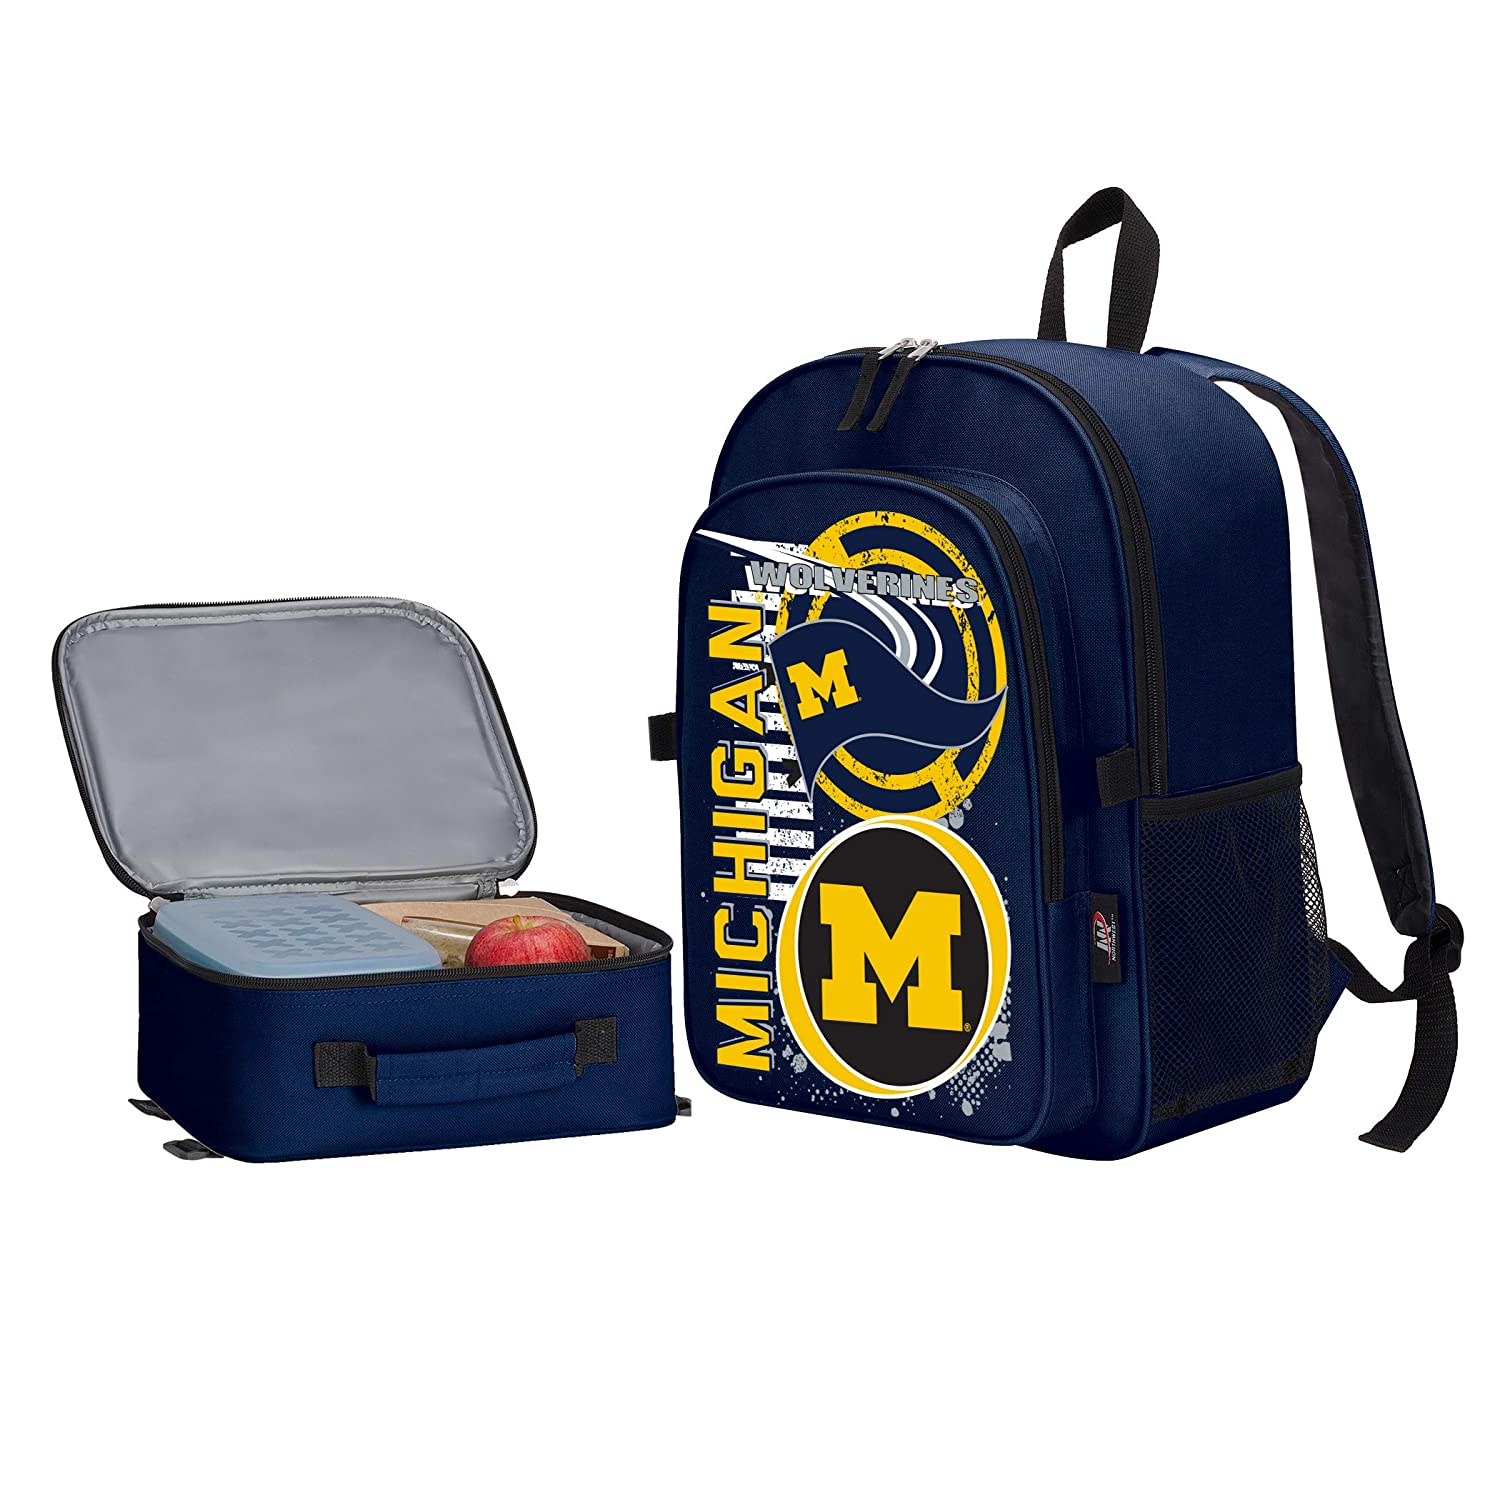 Multiple Colors Officially Licensed NCAA Accelerator Backpack /& Lunch Kit Set 16 x 9.5 x 12